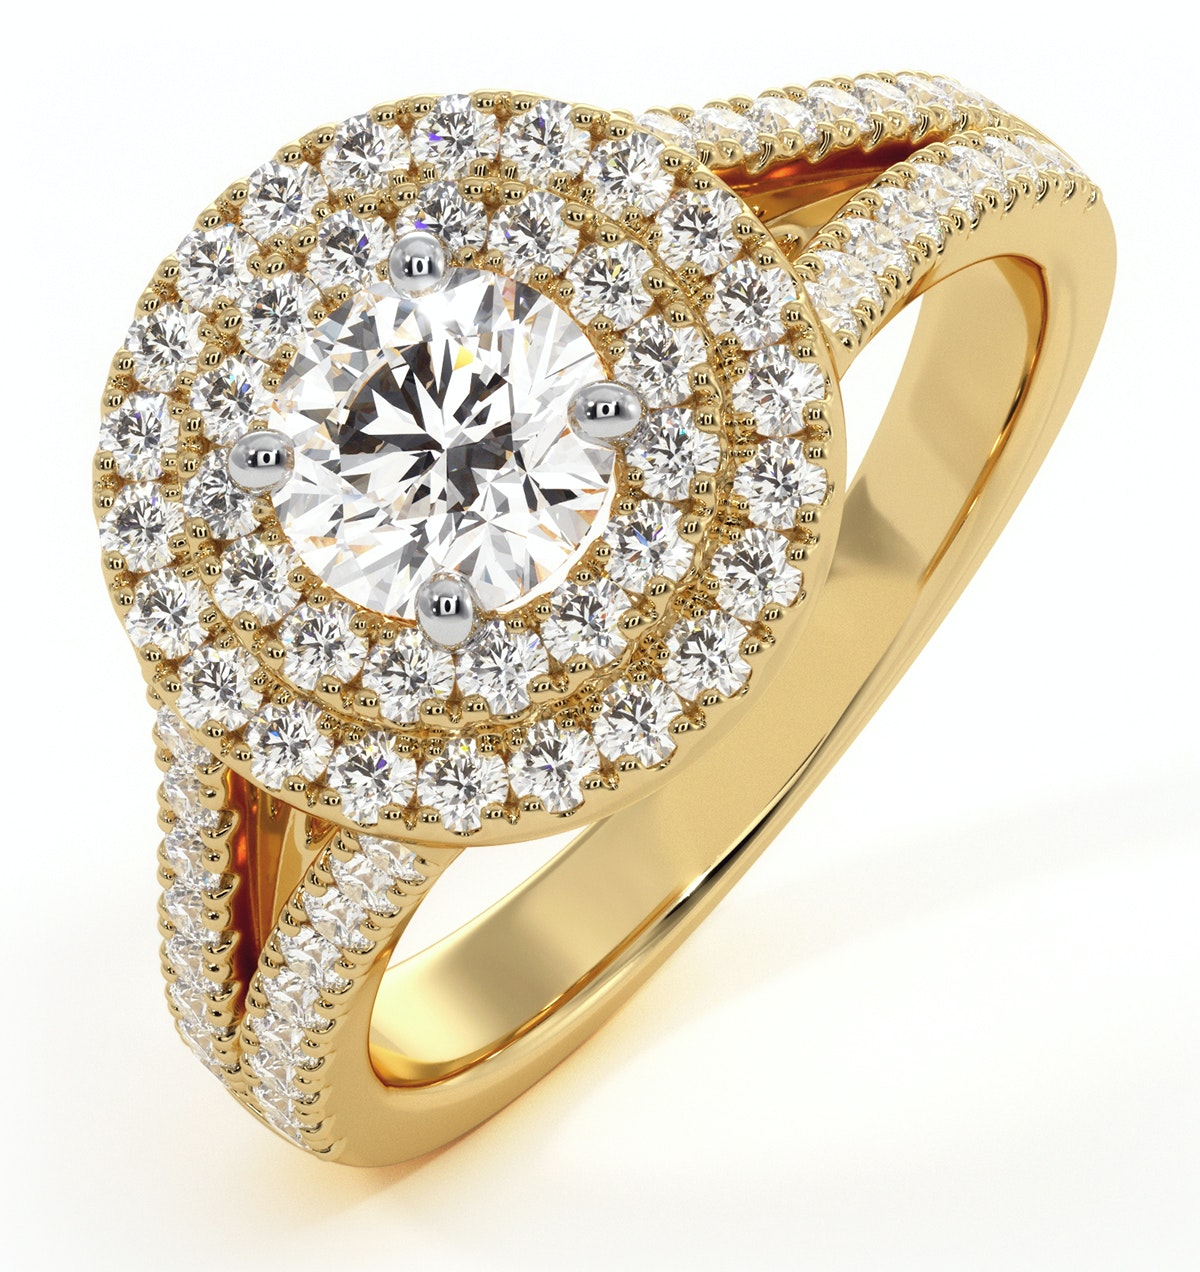 Camilla GIA Diamond Halo Engagement Ring in 18K Gold 1.15ct G/SI1